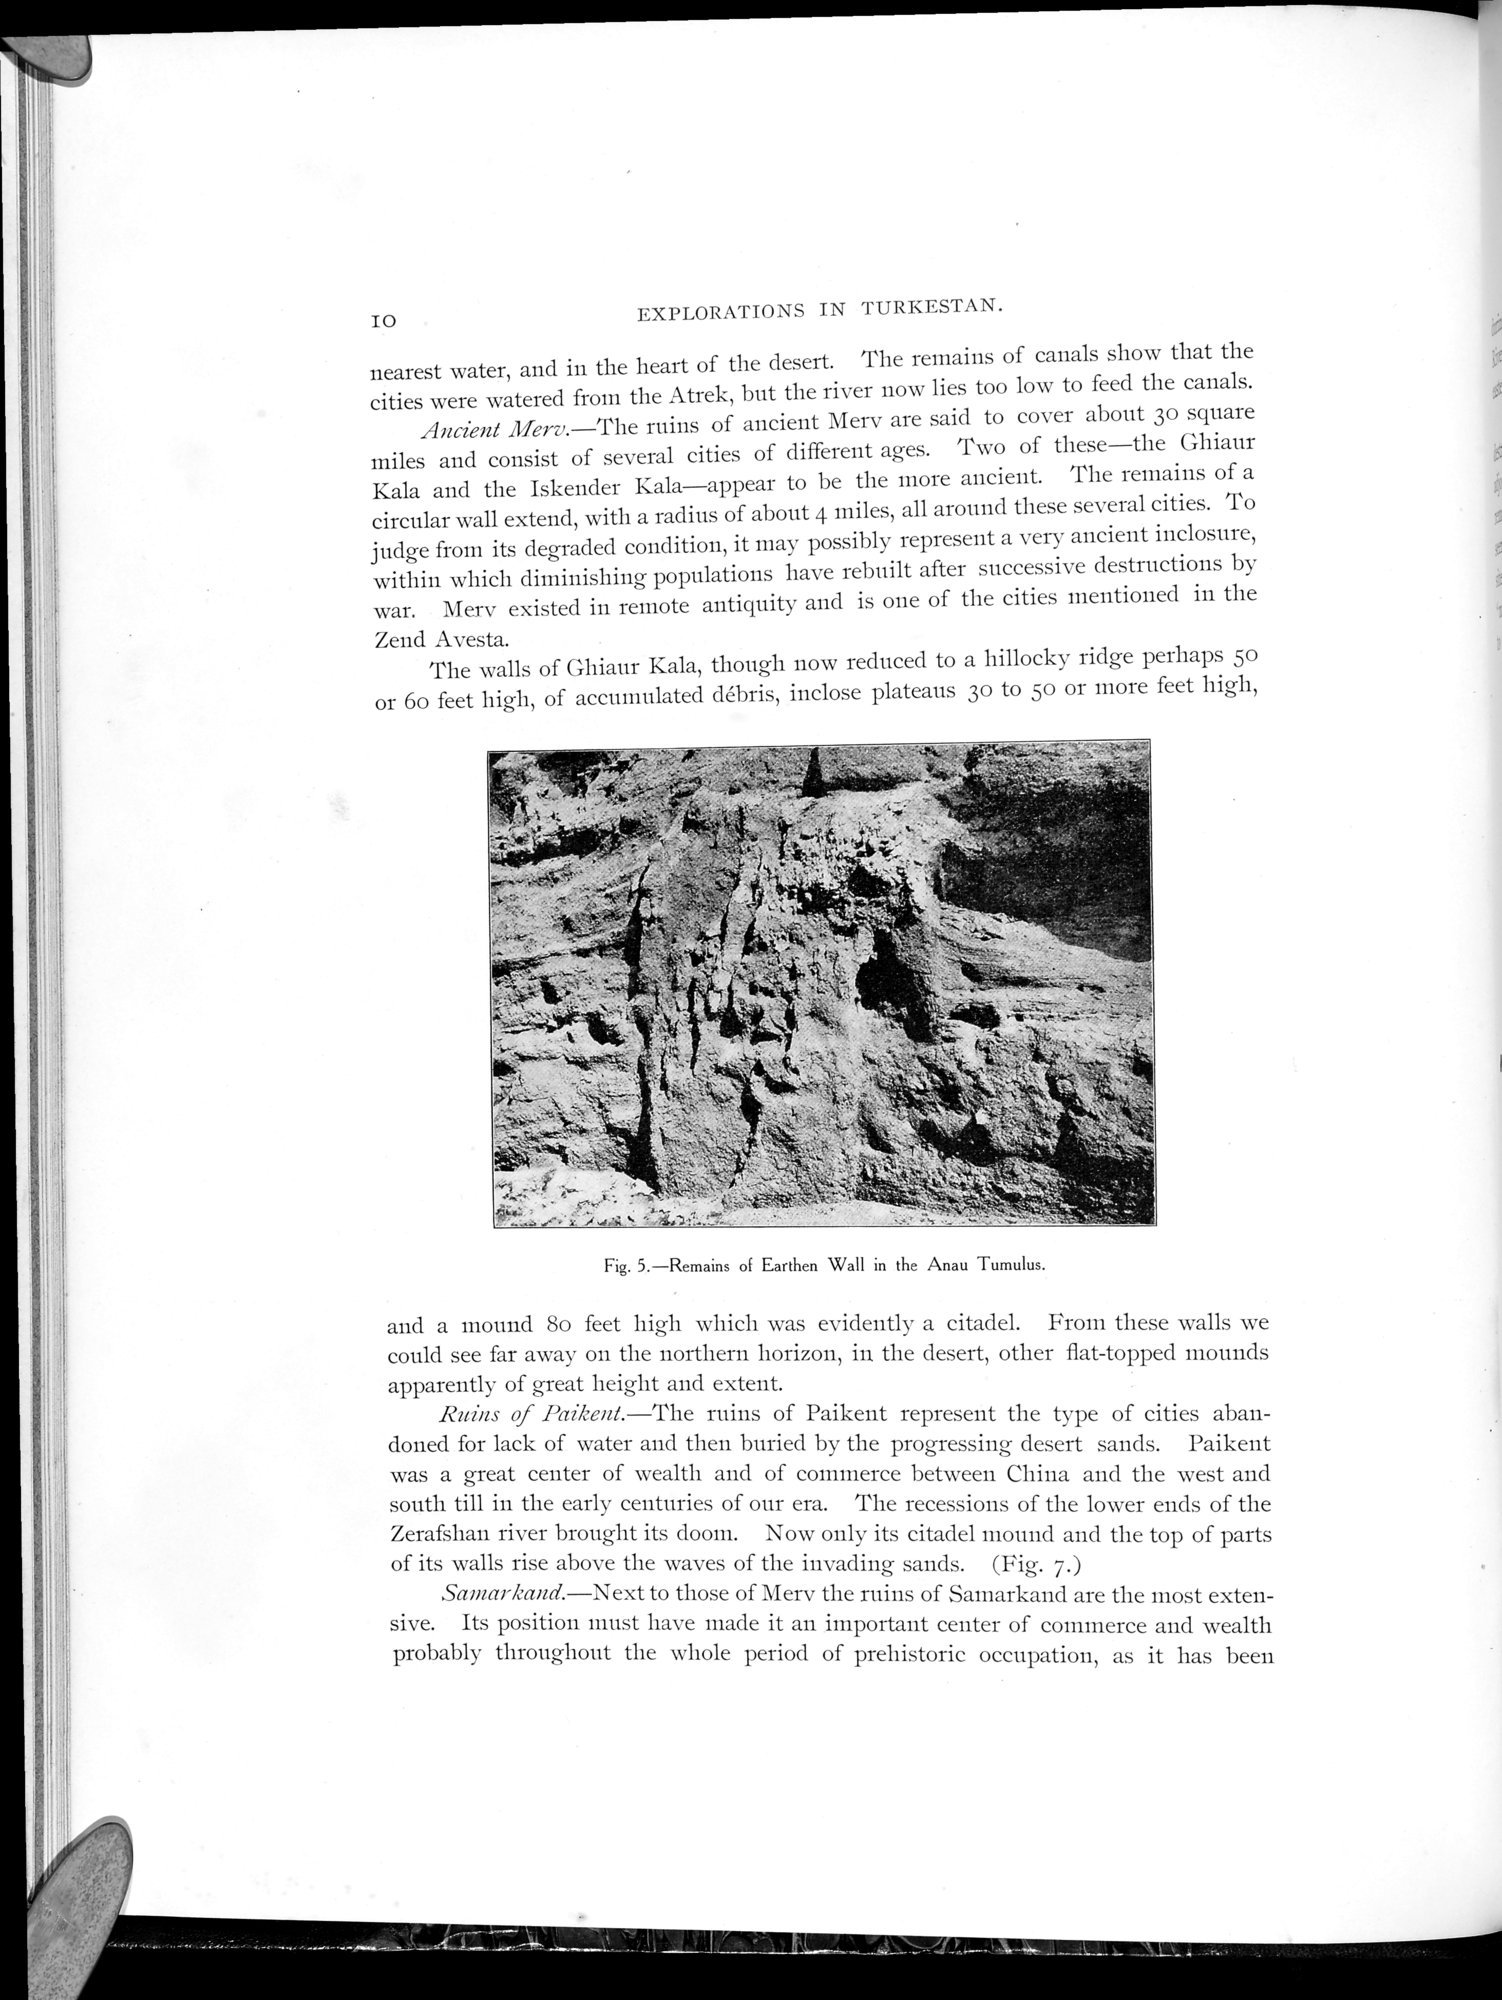 Explorations in Turkestan 1903 : vol.1 / Page 34 (Grayscale High Resolution Image)